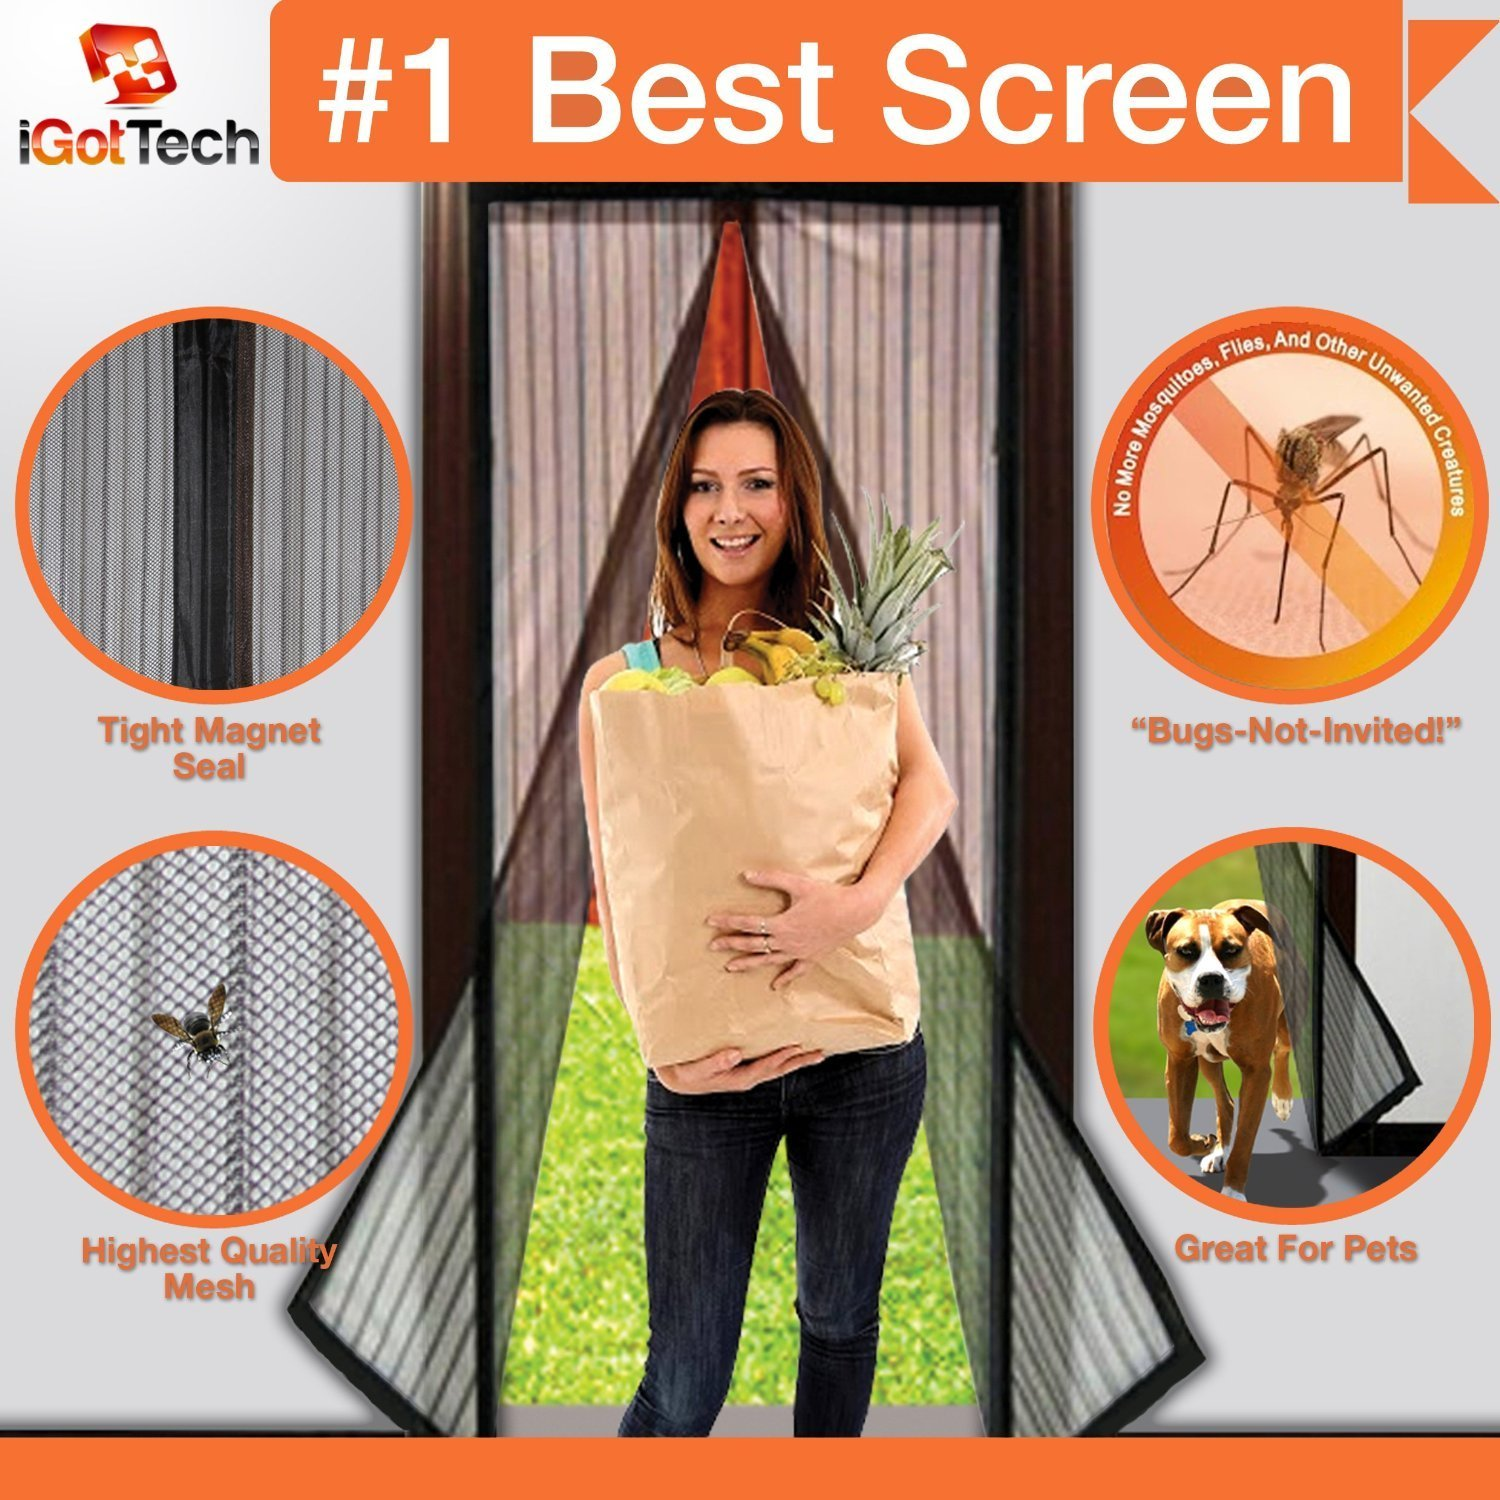 "iGotTech Magnetic Screen Door, Full Frame Velcro - Fits Door Openings up to 34"" x 82"" MAX"